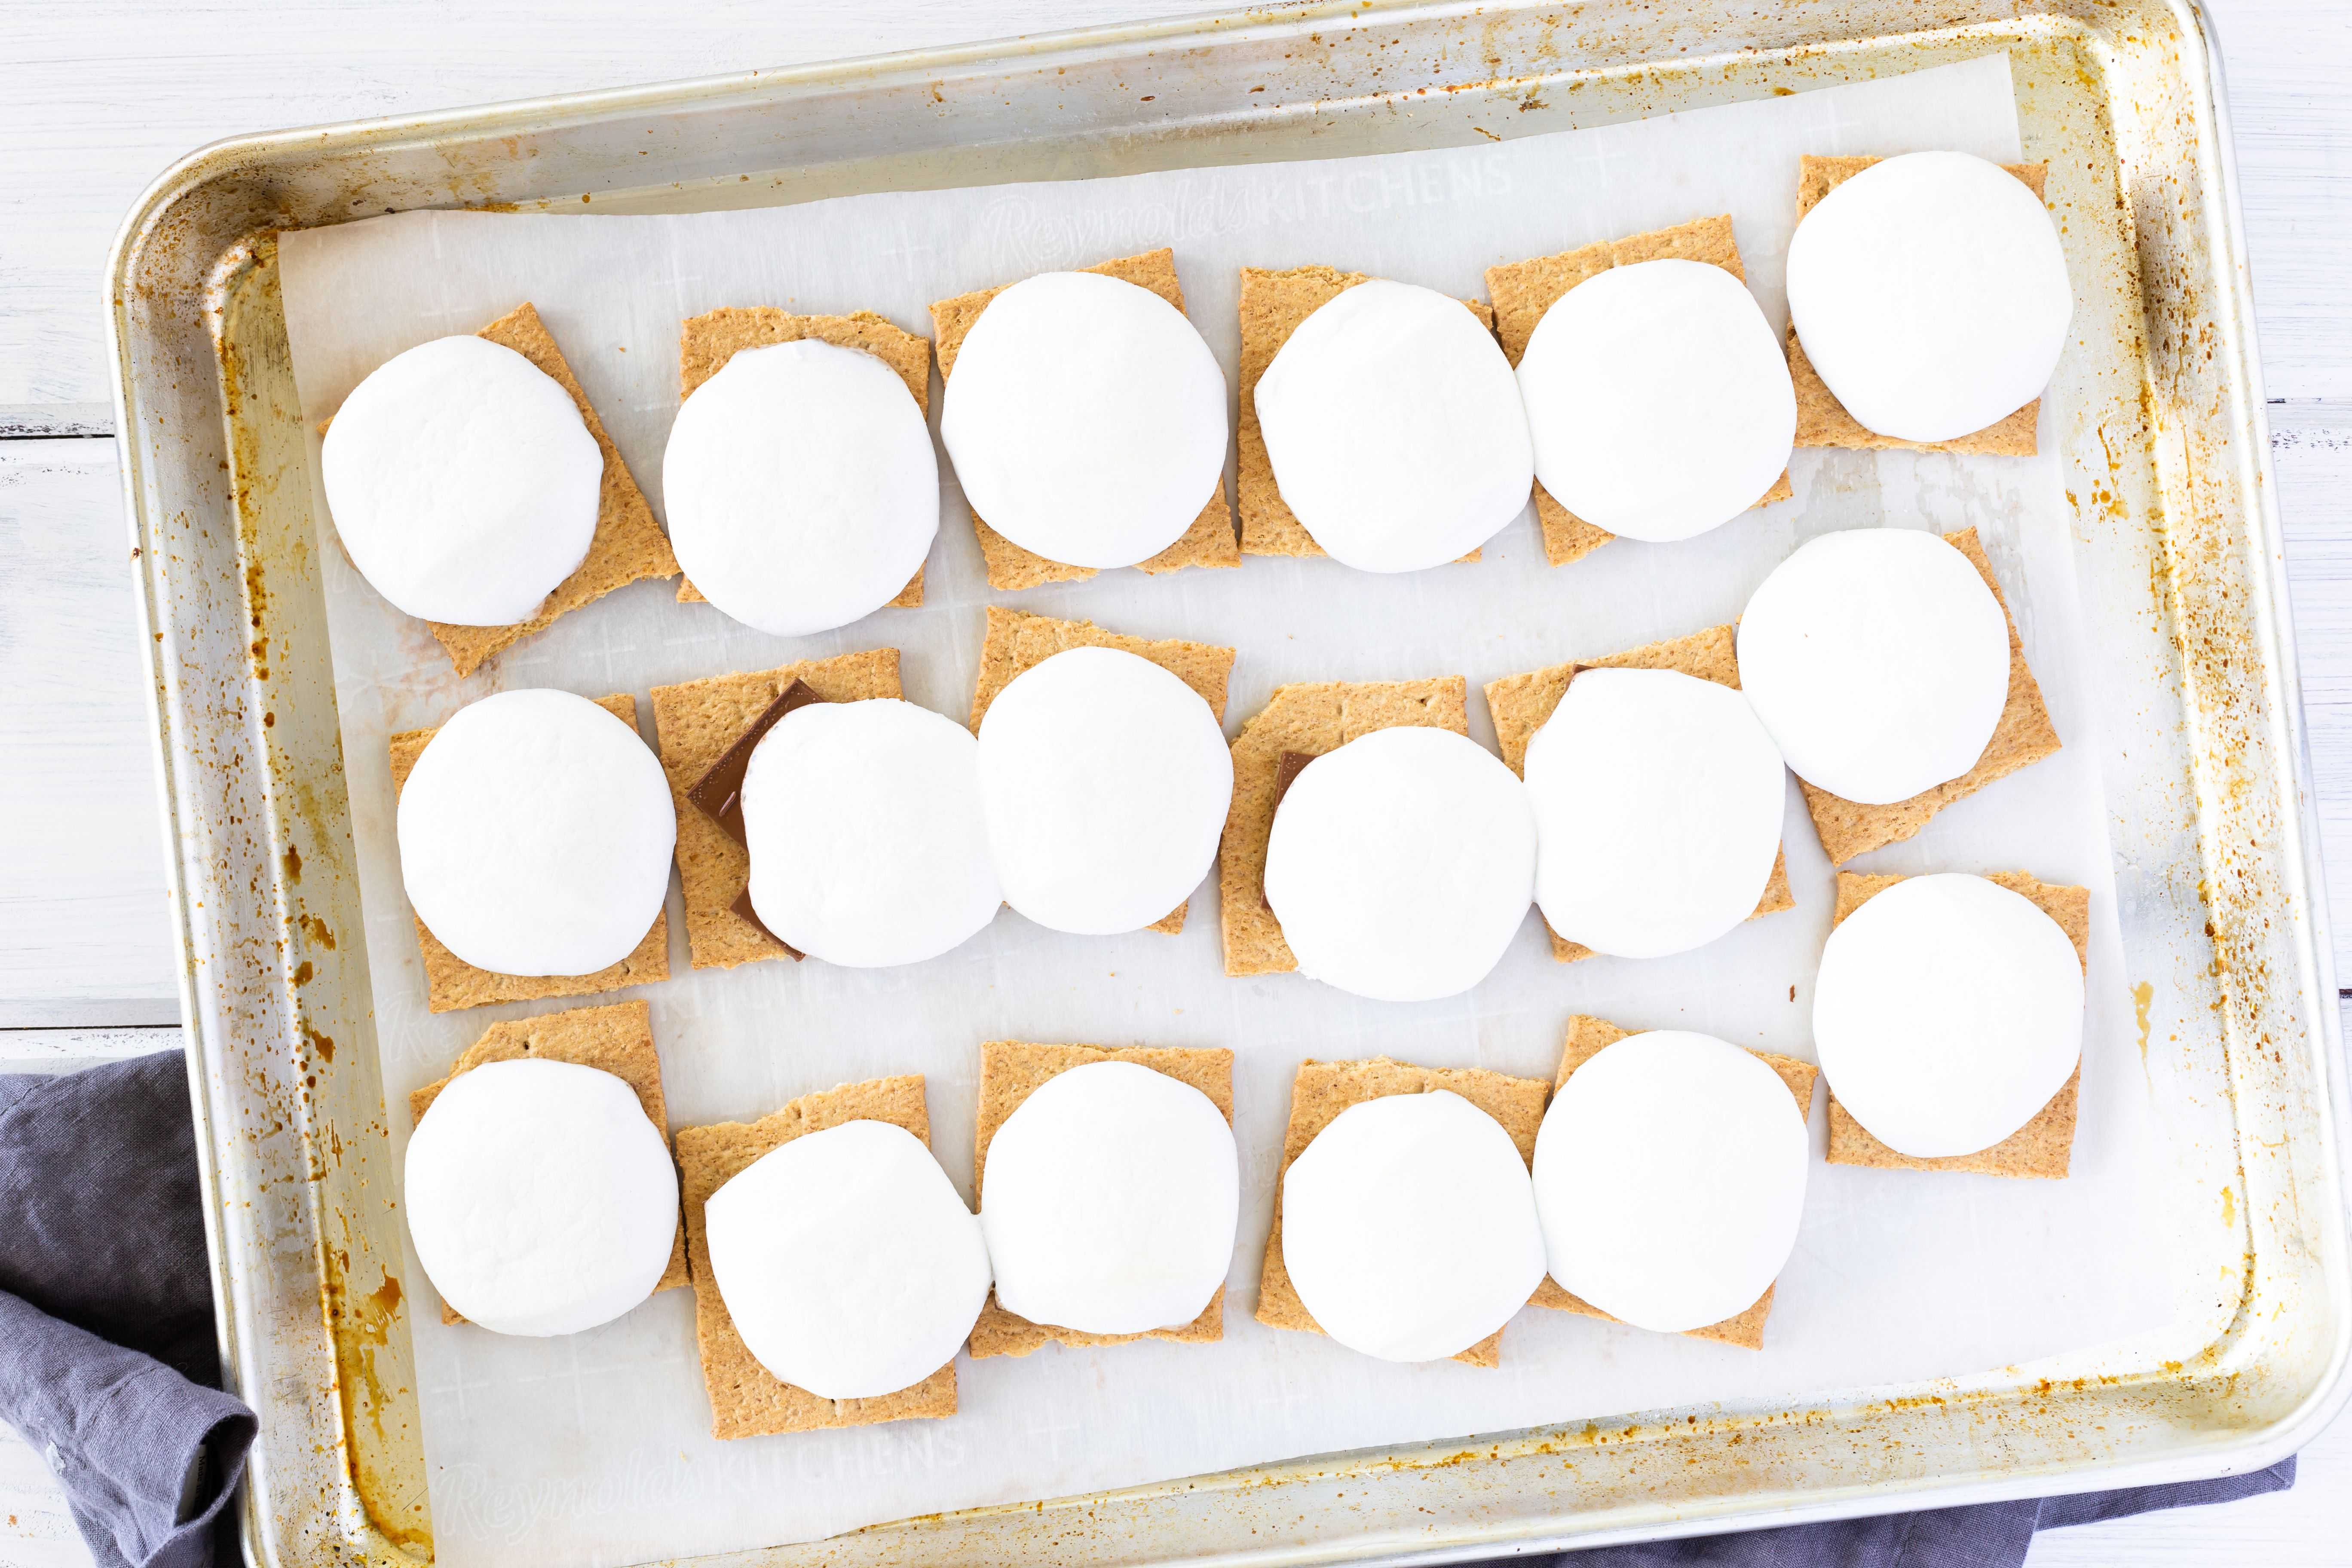 put smores in oven to bake